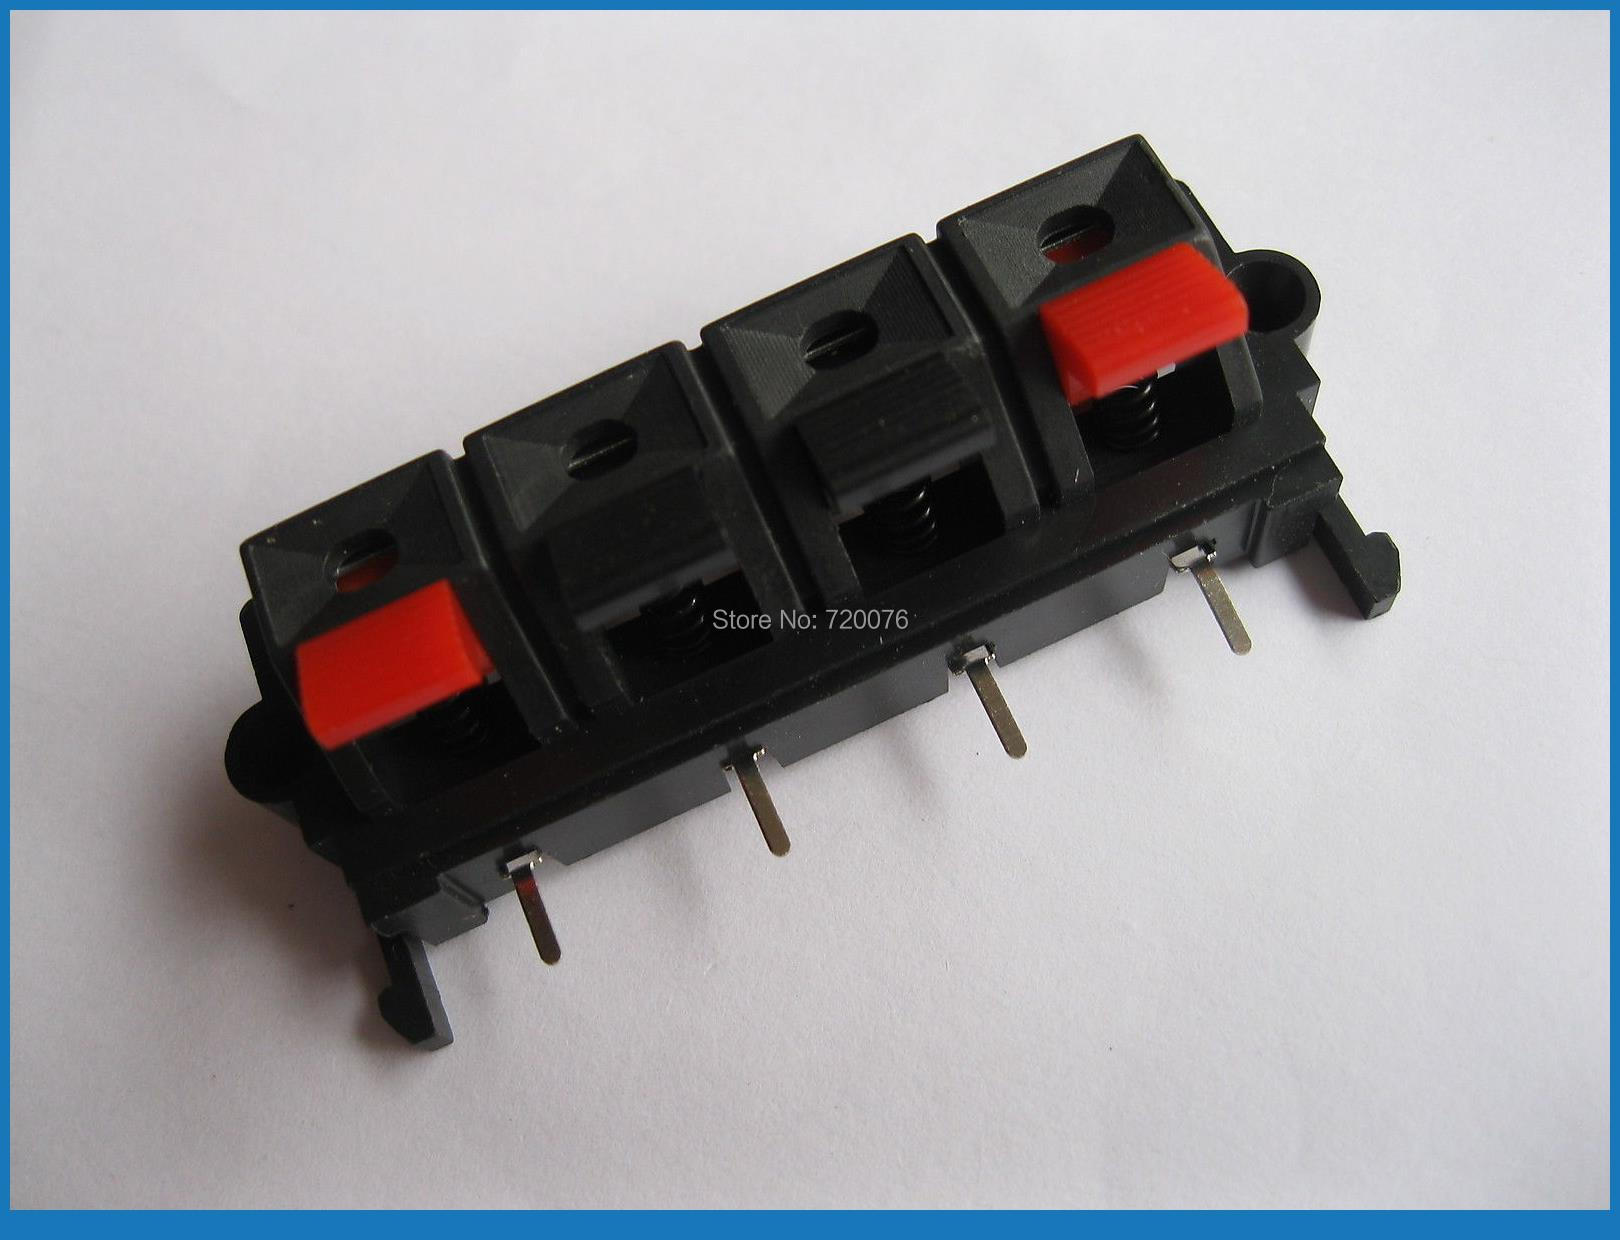 100 pcs WP Push Type Speaker Terminal Board Connector 58.0mmx20.0mm 4 pin WP4-19(China (Mainland))